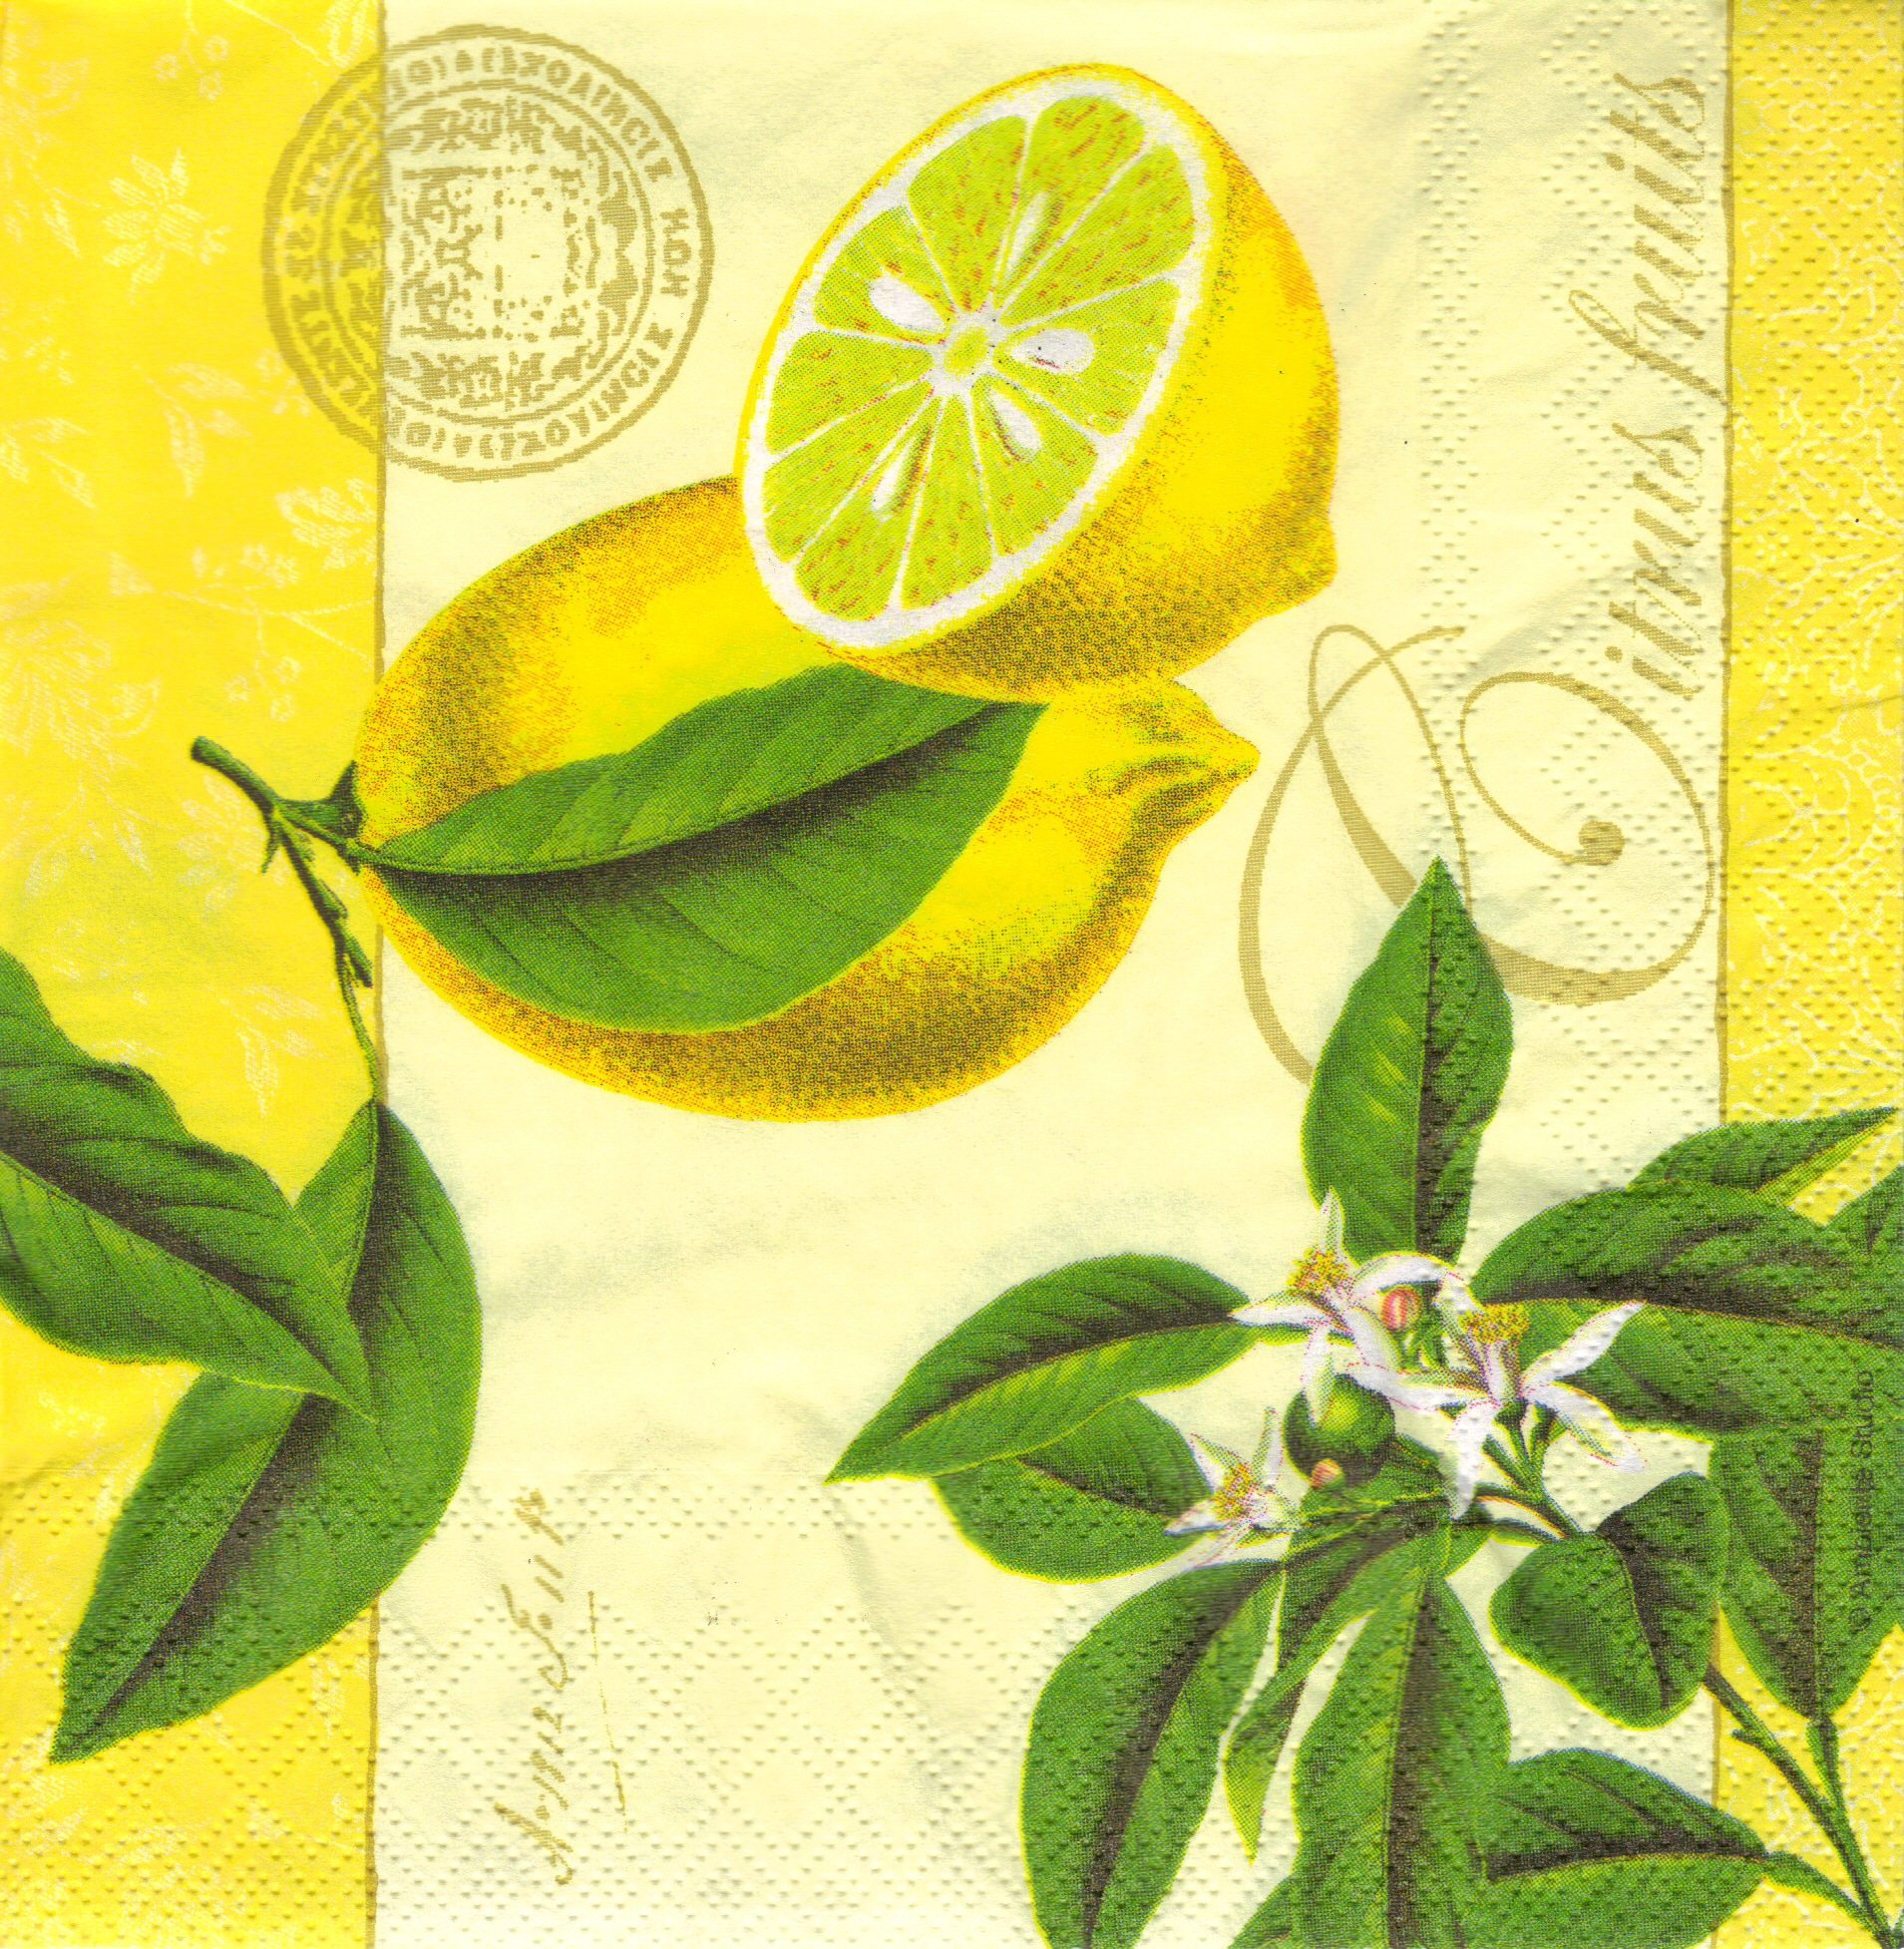 Serwetka do decoupage Ambiente 26-13305096 citrus fruits yellow